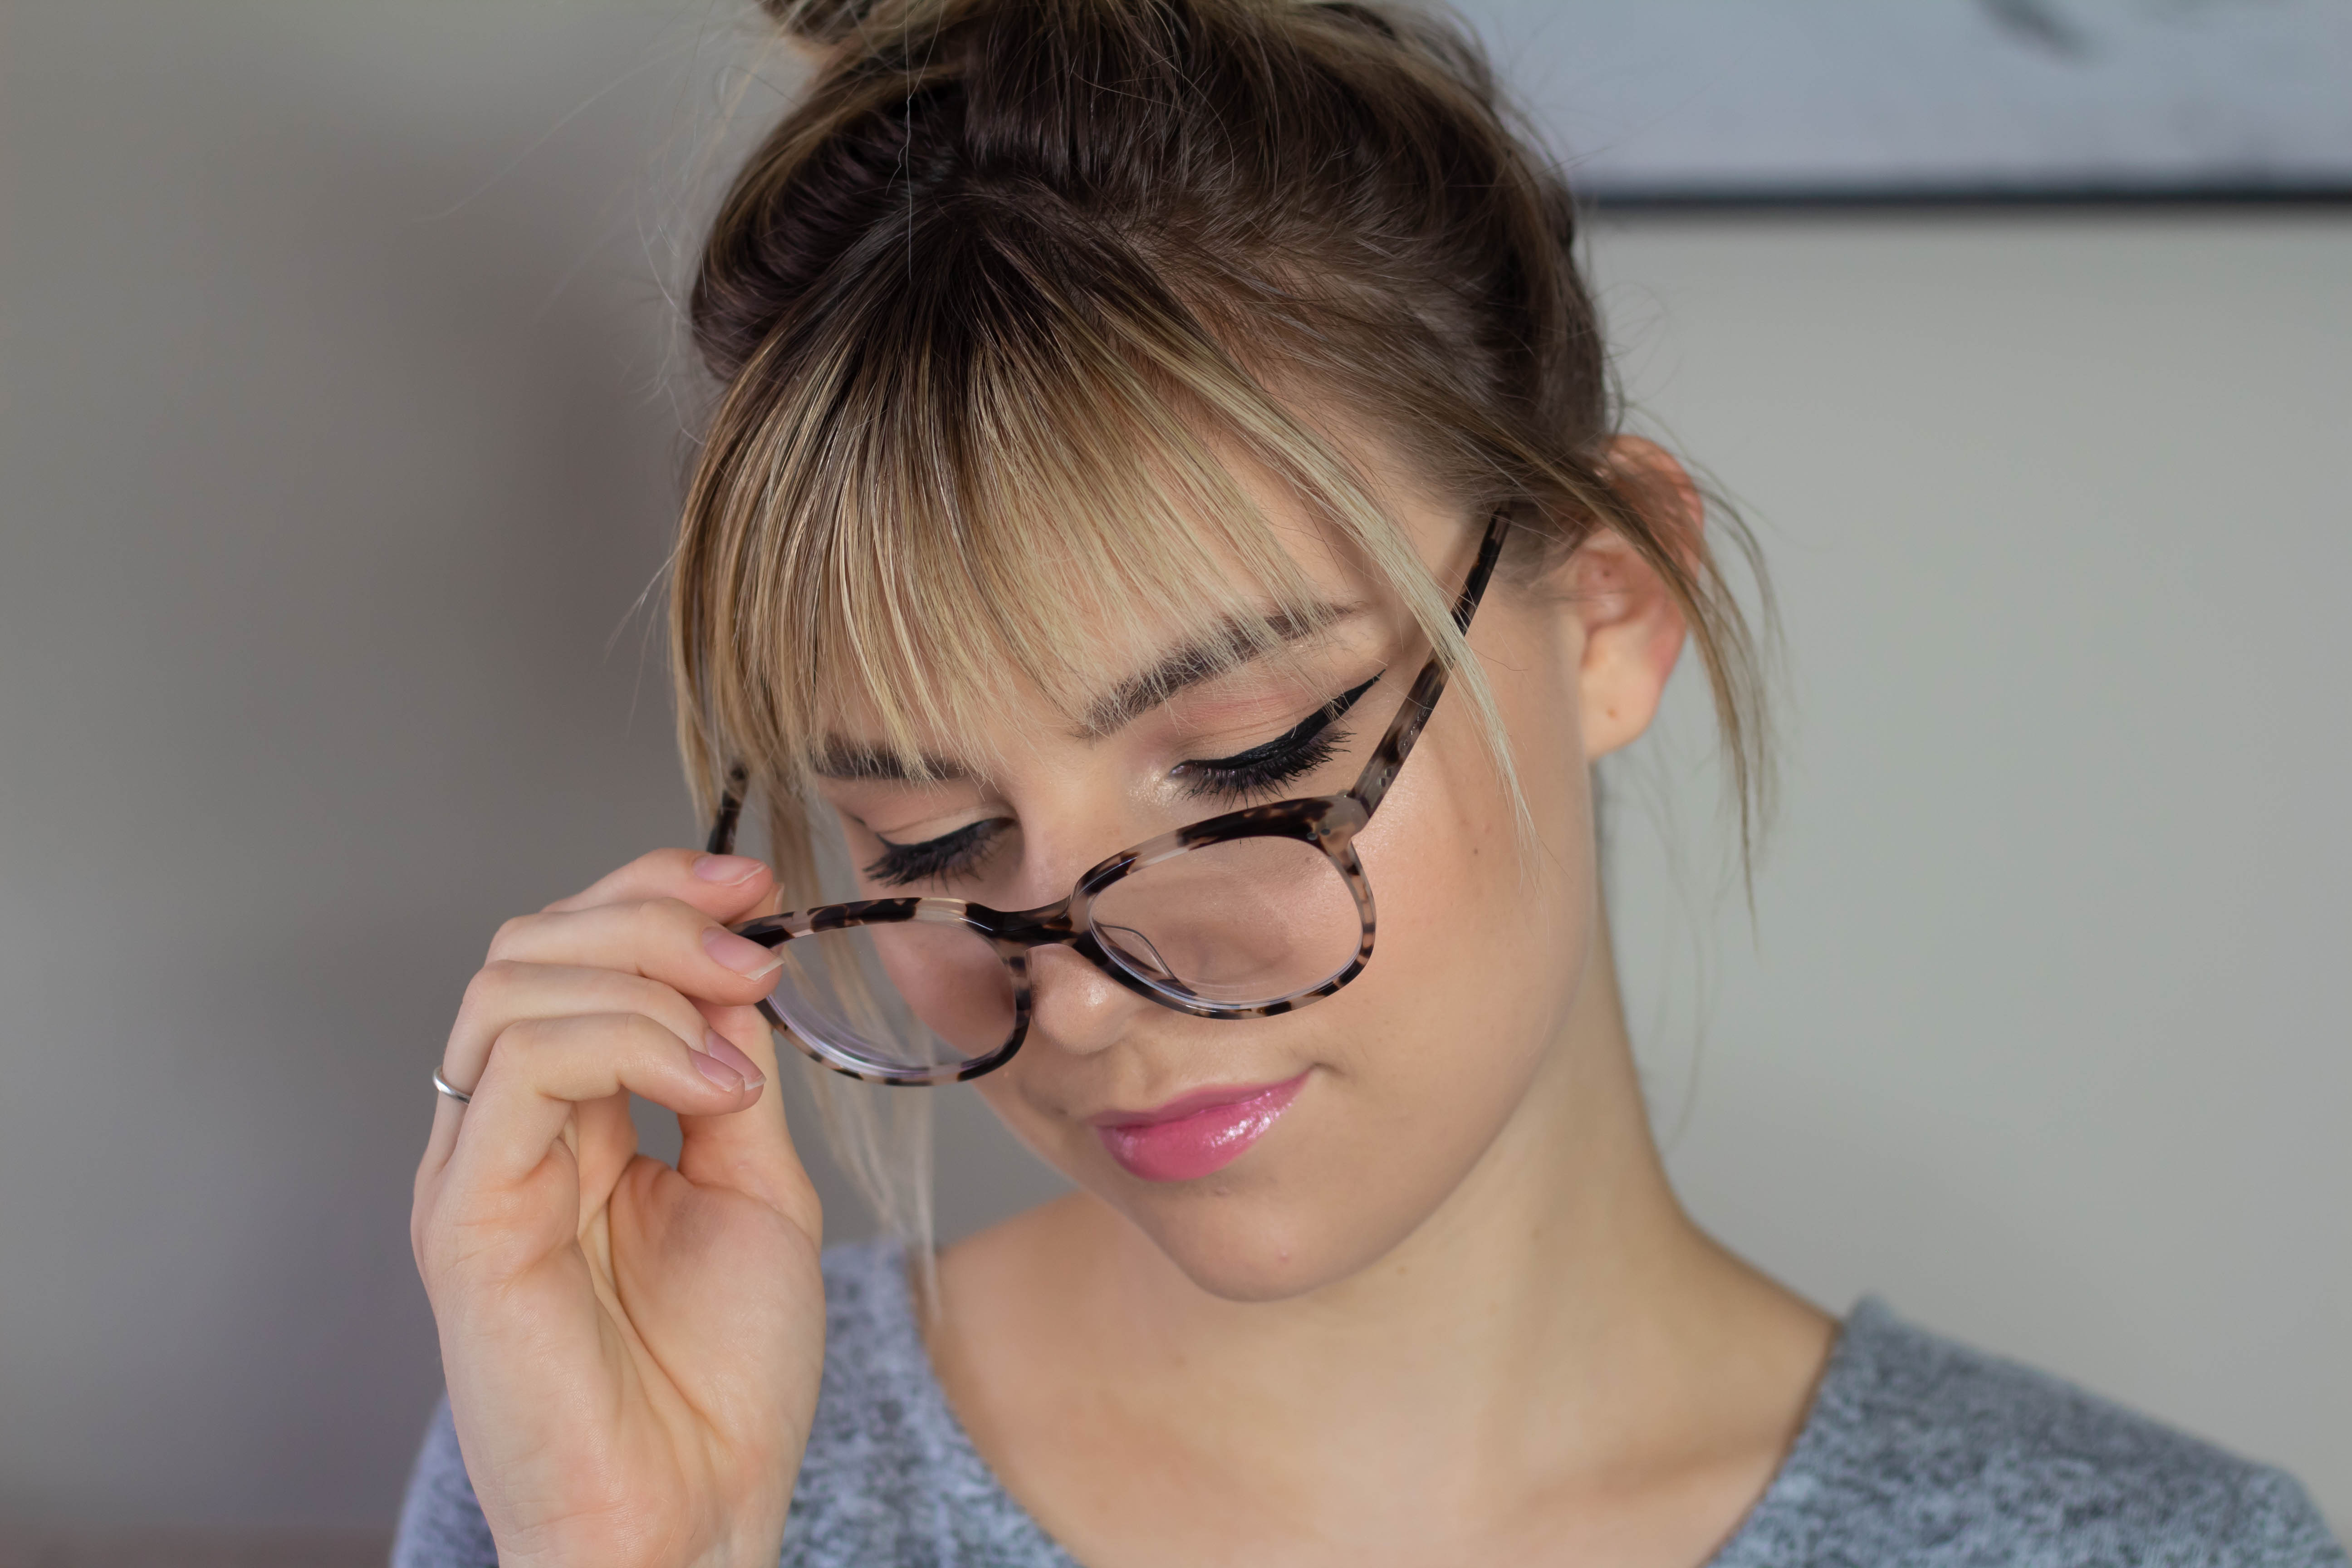 Back To School Makeup Tutorial | For My Girls With GLASSES!